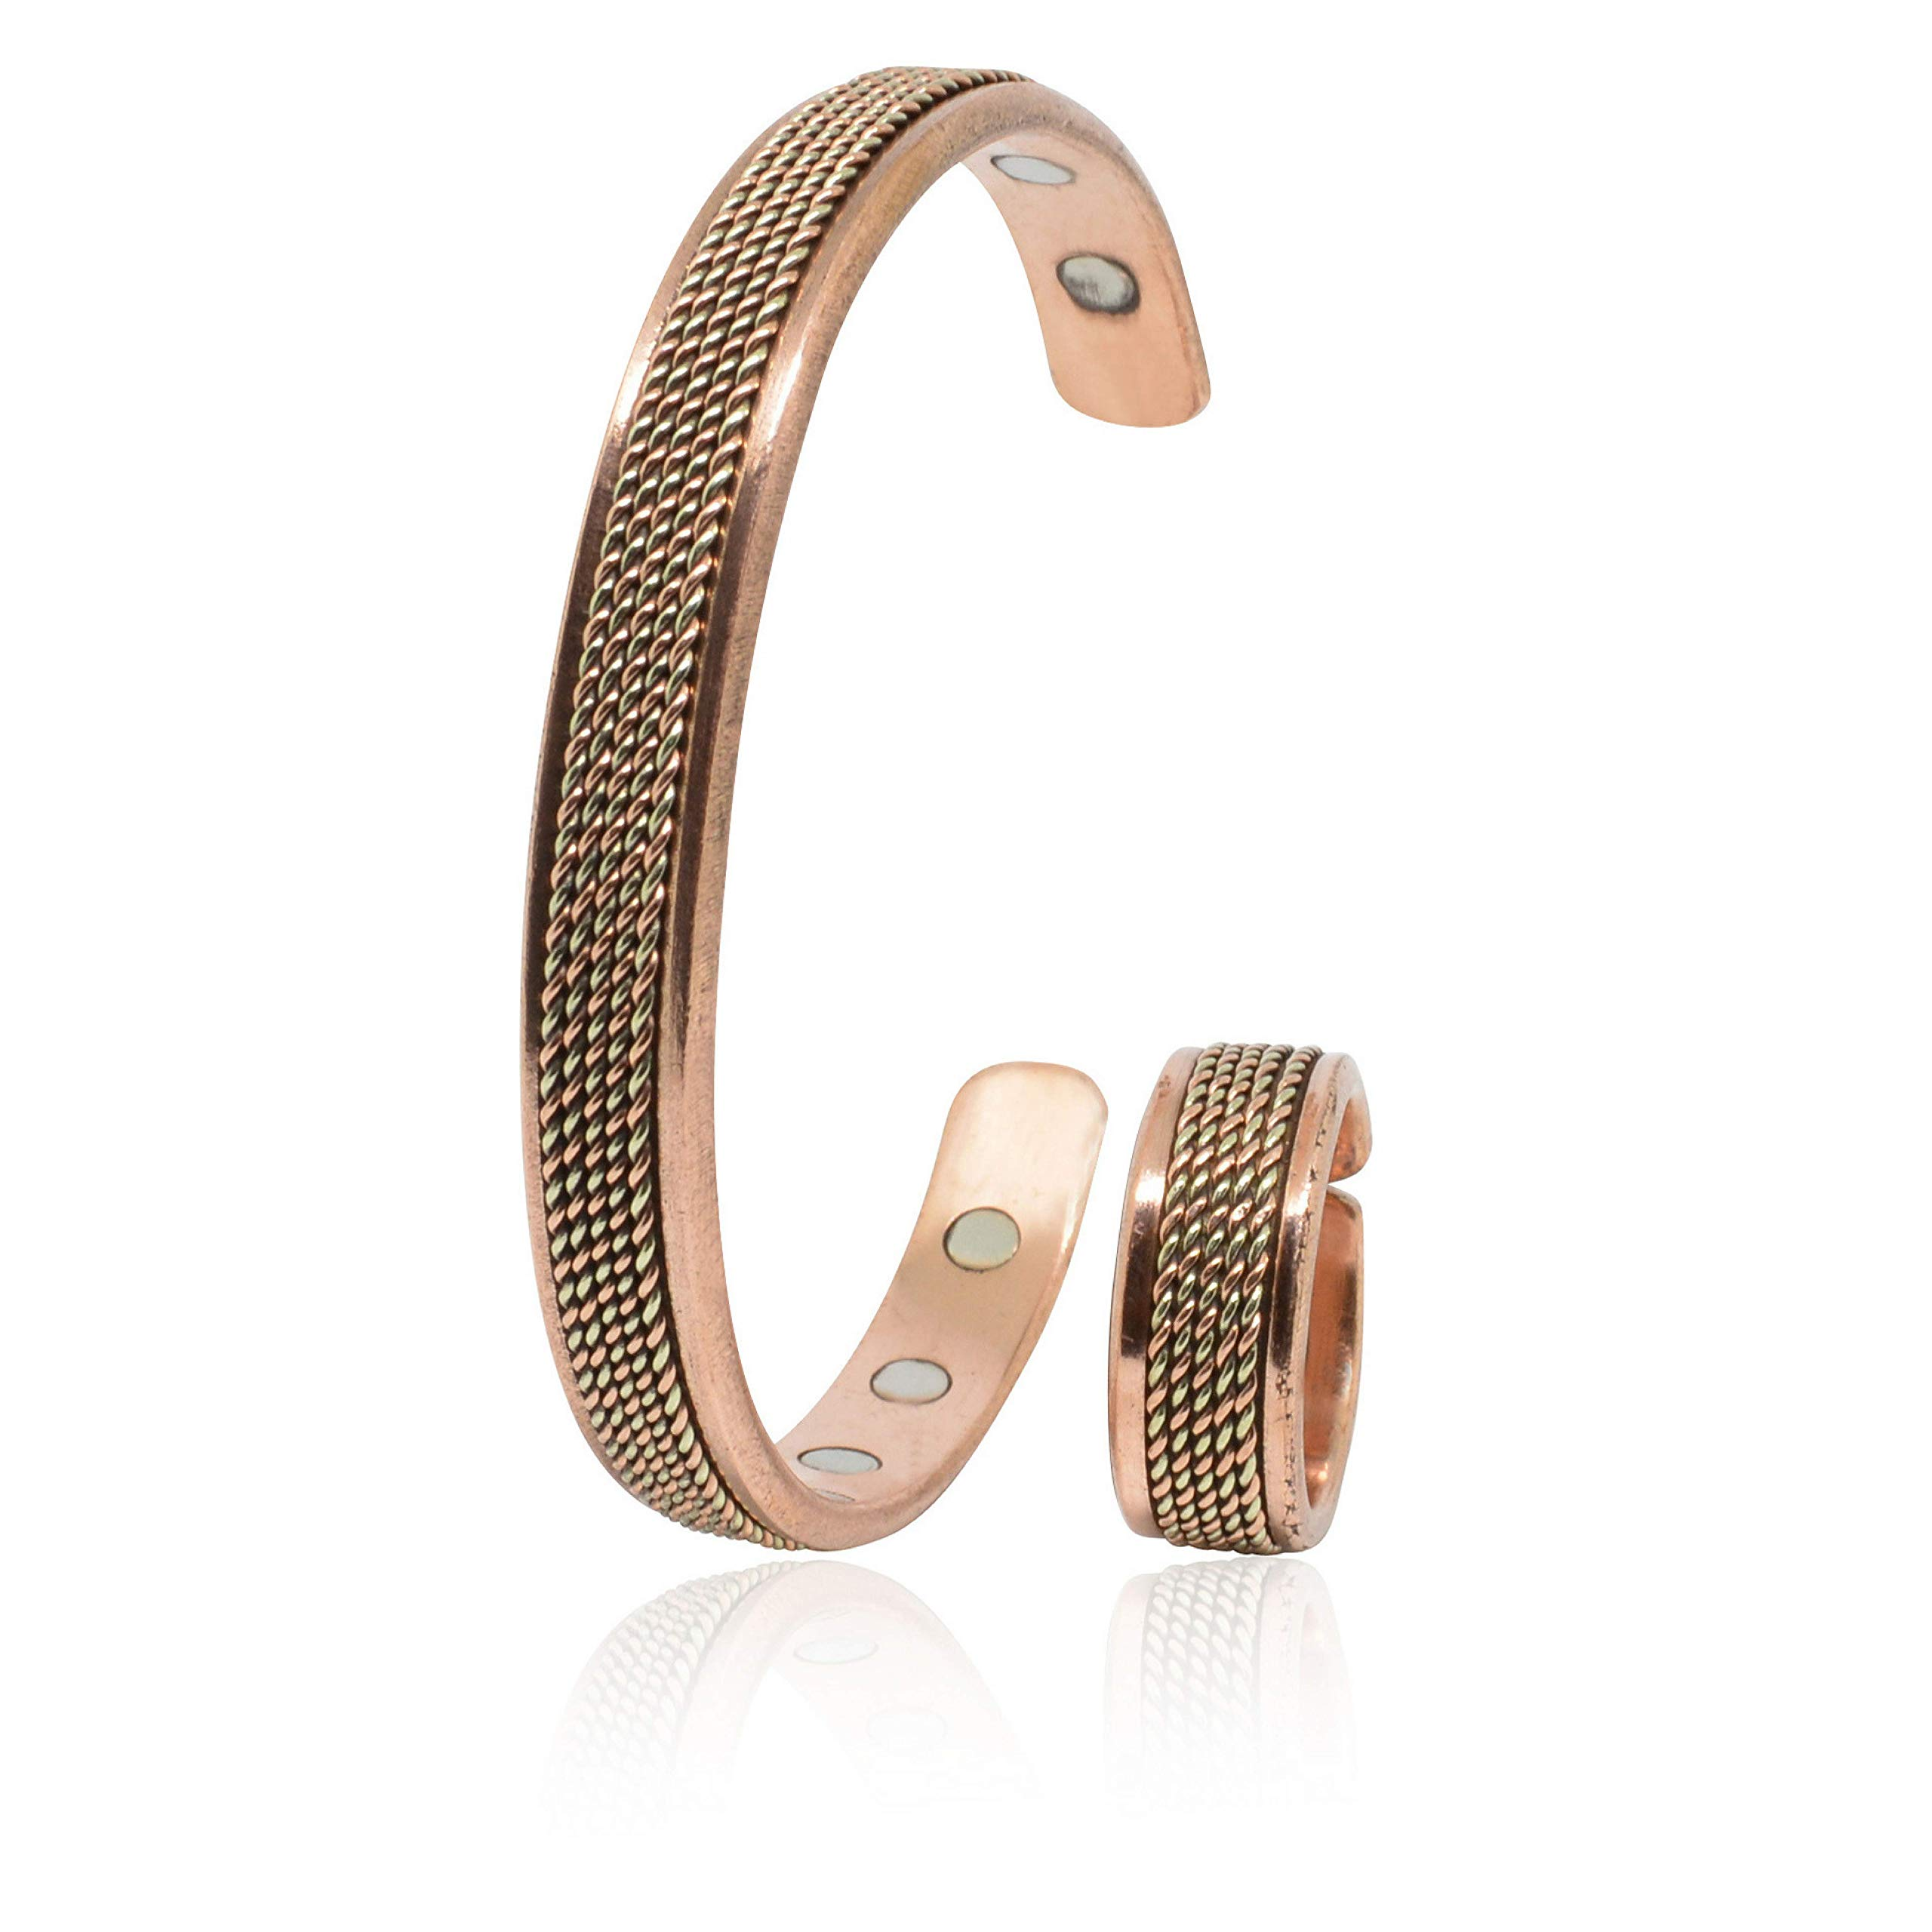 Handmade Copper Bracelet and a Ring for Men and Women-Arthritis Therapy Magnetic Bracelets with 6 Powerful Magnets-Effective & Natural Relief for Joint Pain and Arthritis(Solid Chain Inlay+Ring)